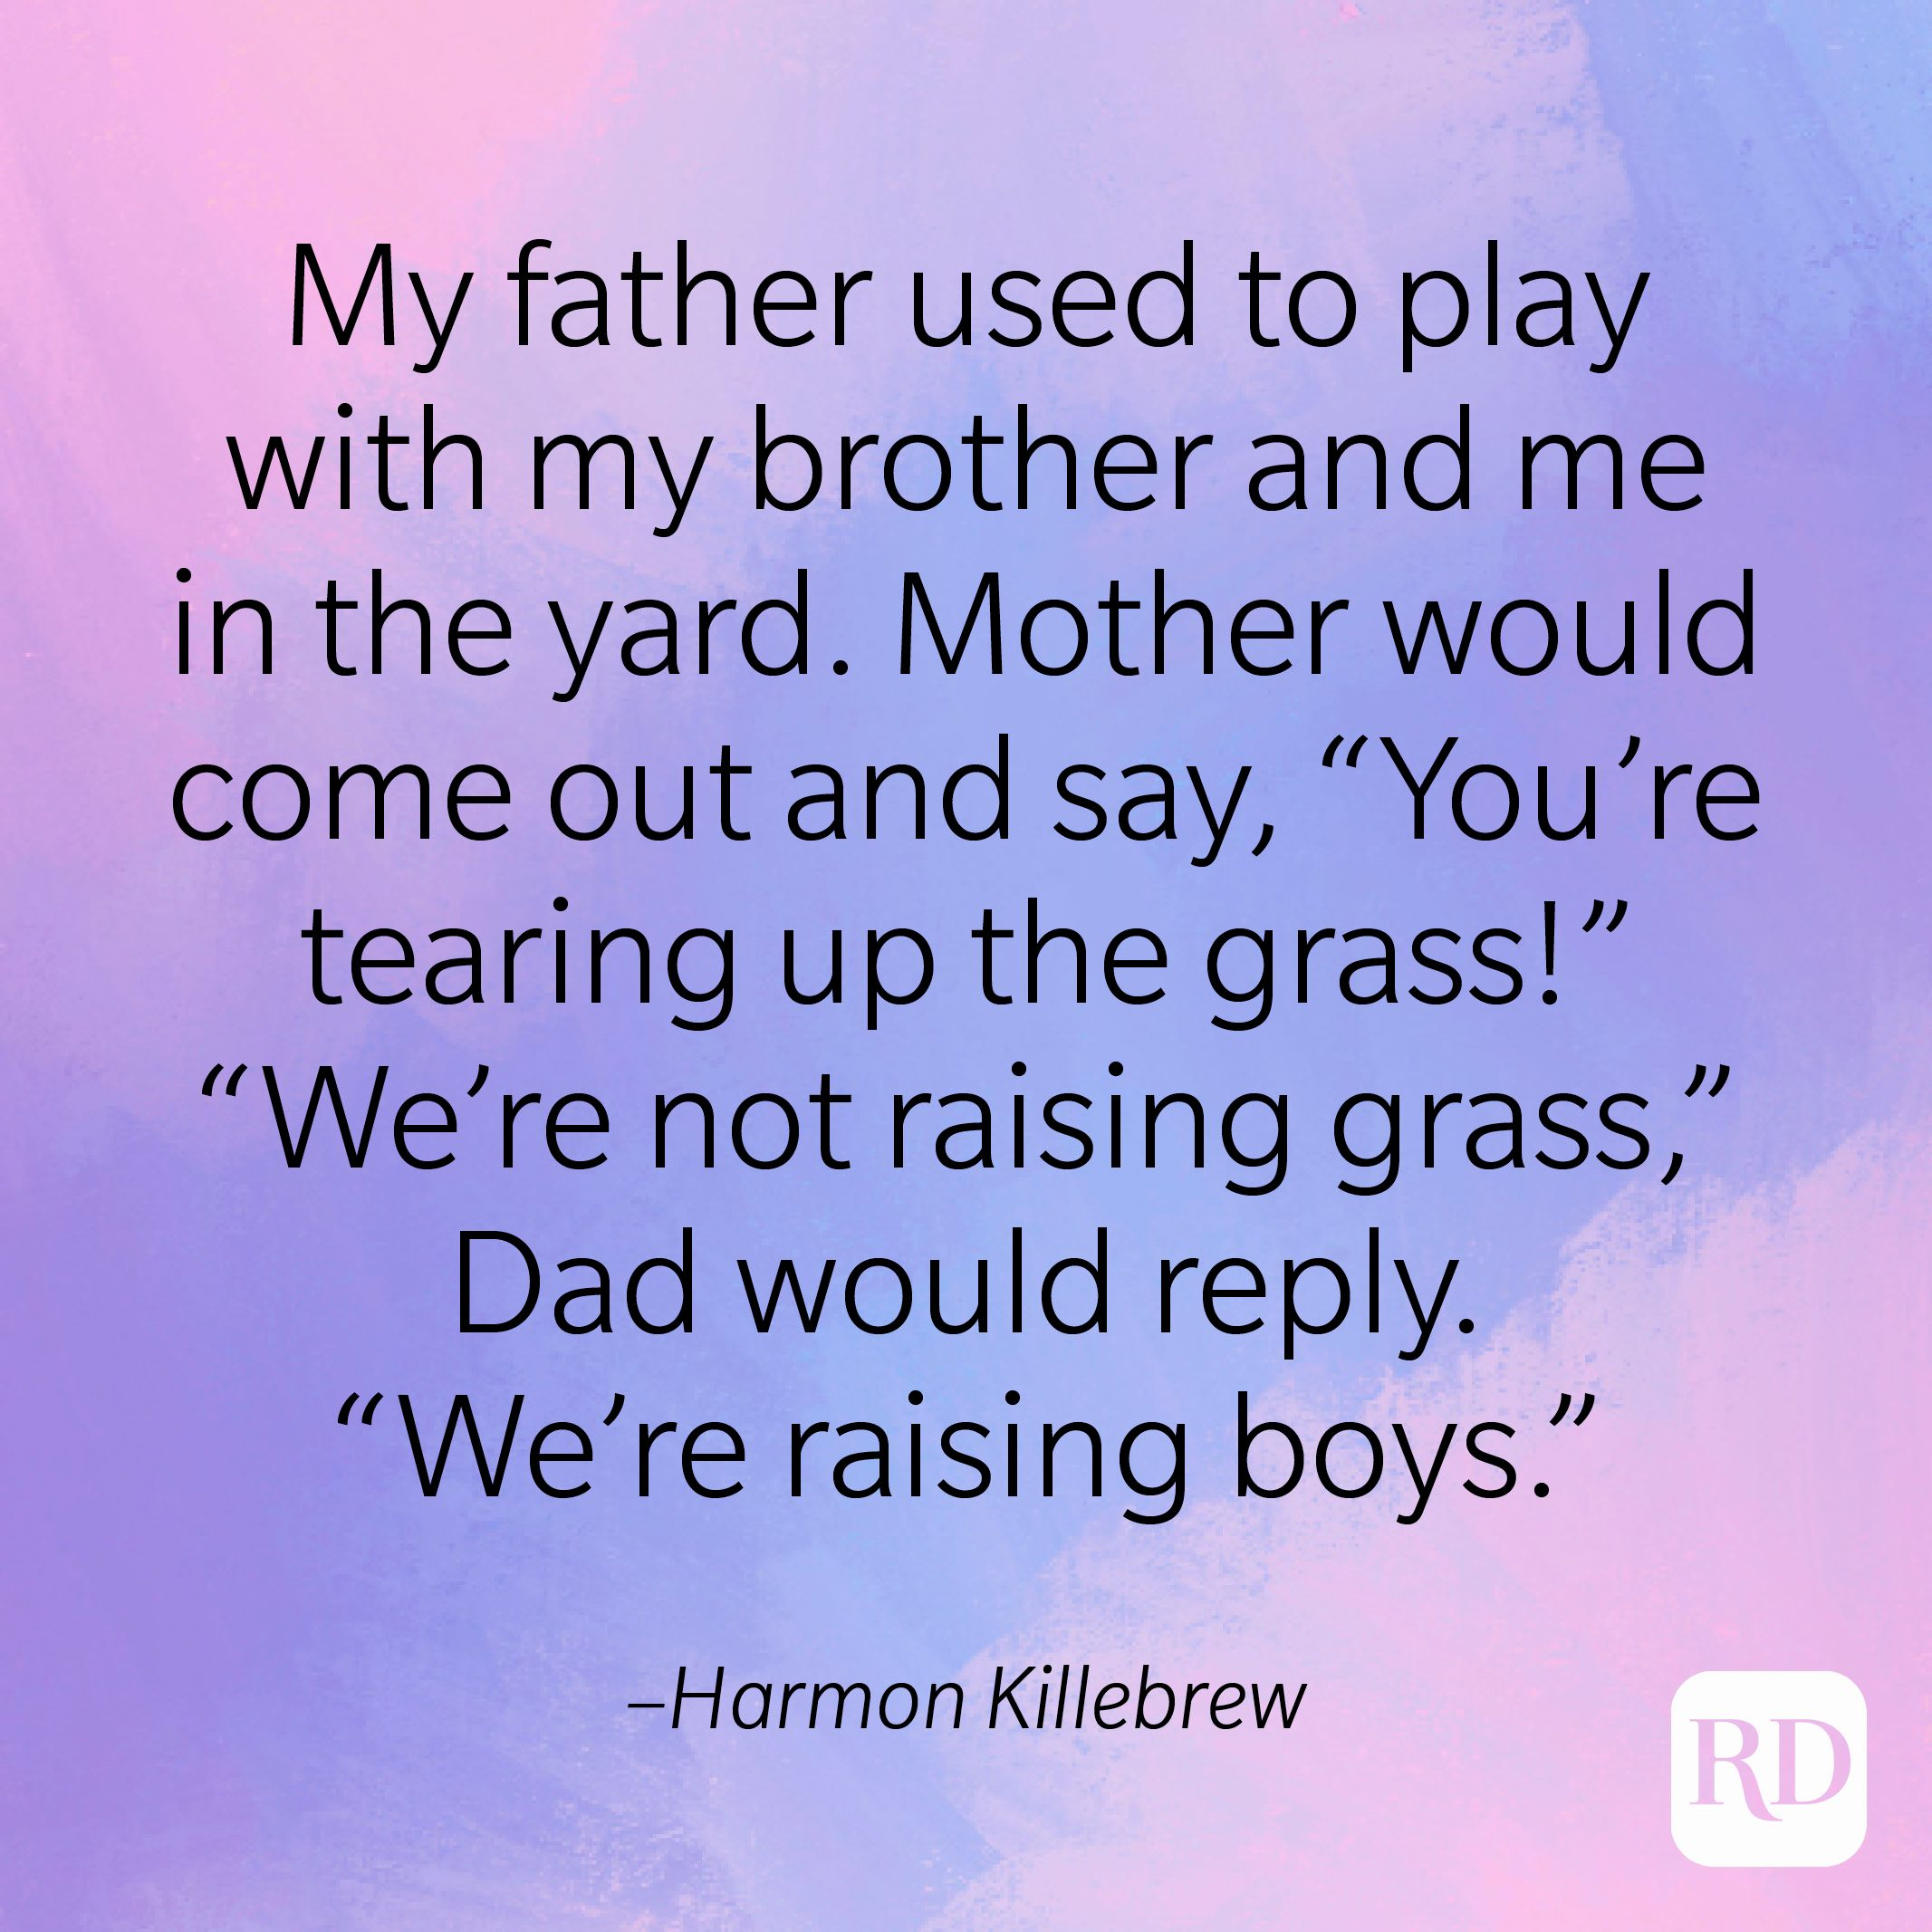 """""""My father used to play with my brother and me in the yard. Mother would come out and say, 'You're tearing up the grass'; 'We're not raising grass,' Dad would reply. 'We're raising boys.'"""" –Harmon Killebrew"""